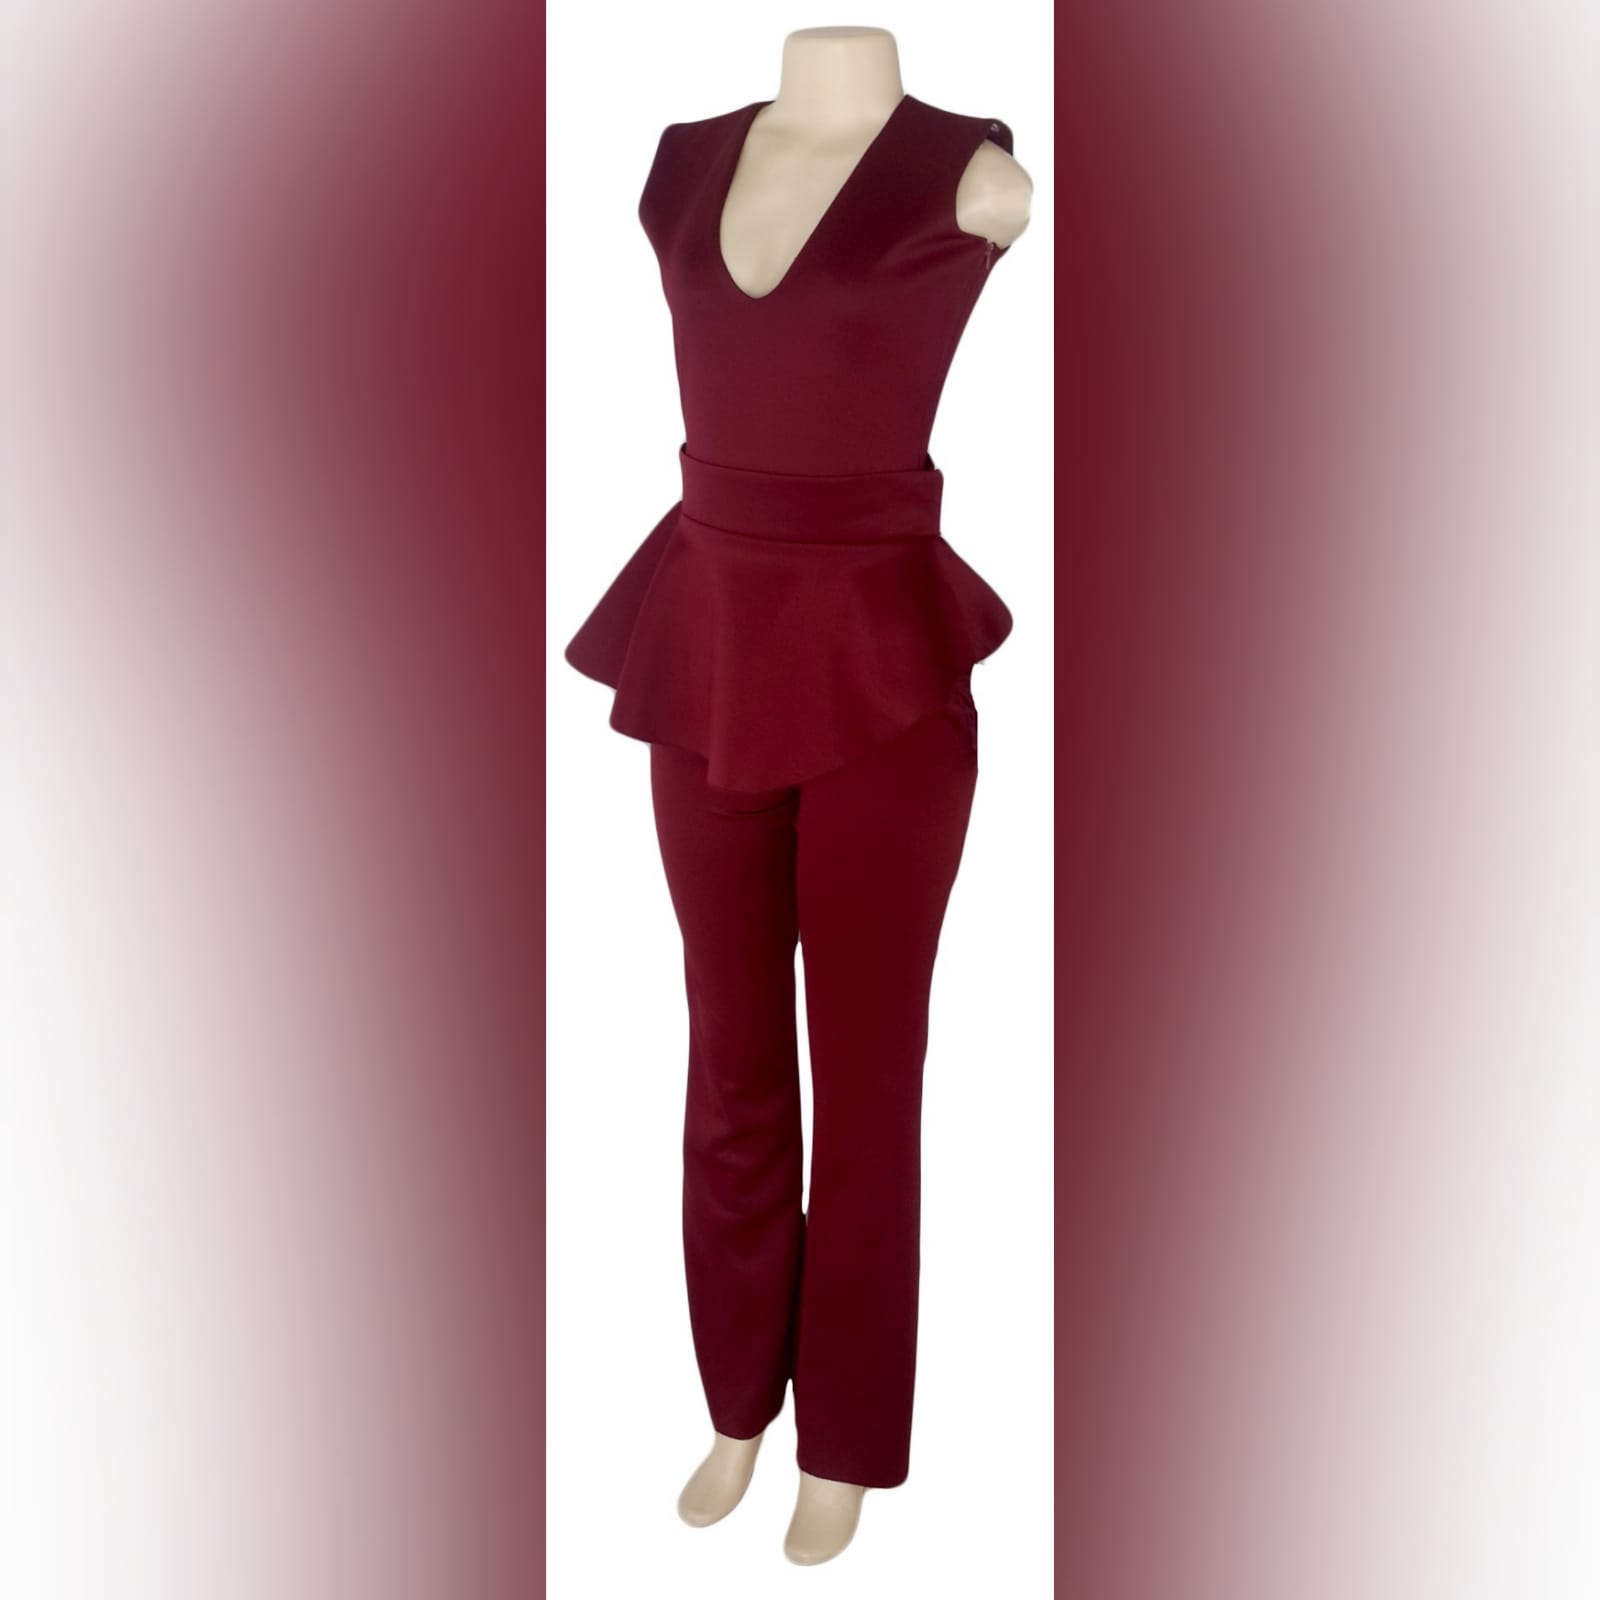 3 piece burgundy evening outfit 1 3 piece burgundy evening outfit. Bodysuit with a v neckline, with a removable peplum belt. With a removable shoulder cape